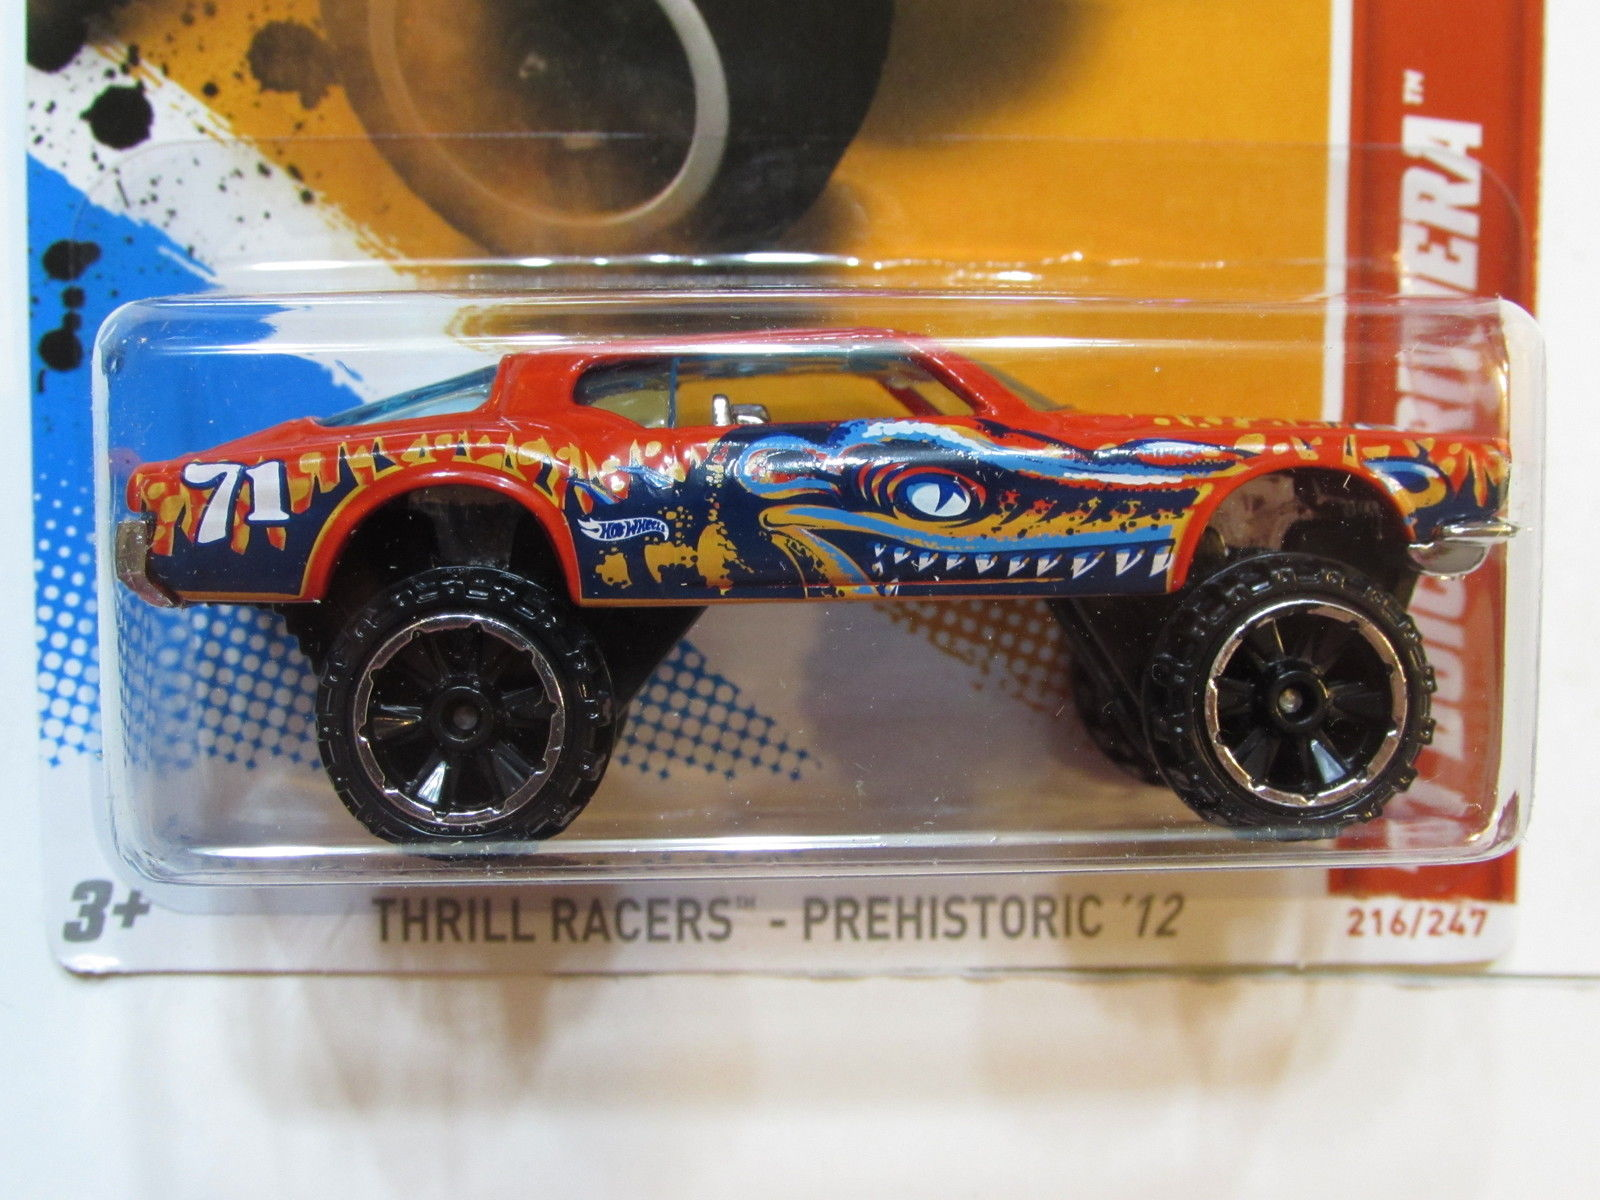 HOT WHEELS 2012 THRILL RACERS-PREHISTORIC 71 BUICK RIVERA RED FACTORY SEALED